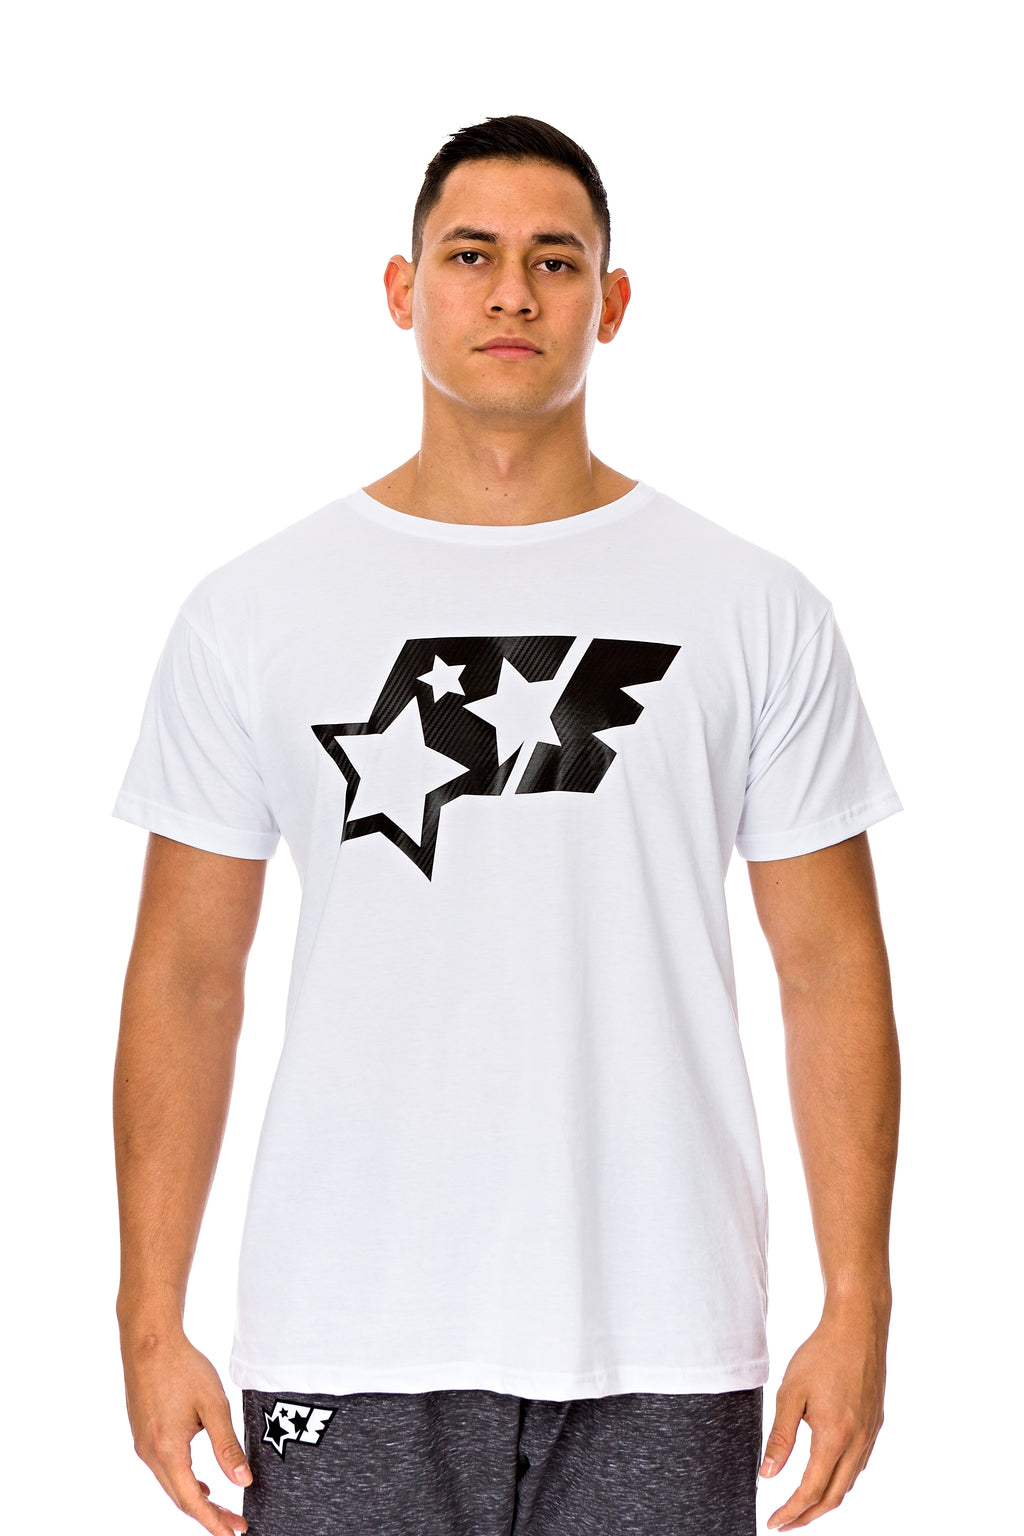 BIG LOGO SHIRT - ACE WHITE - ACEPERFORMANCE